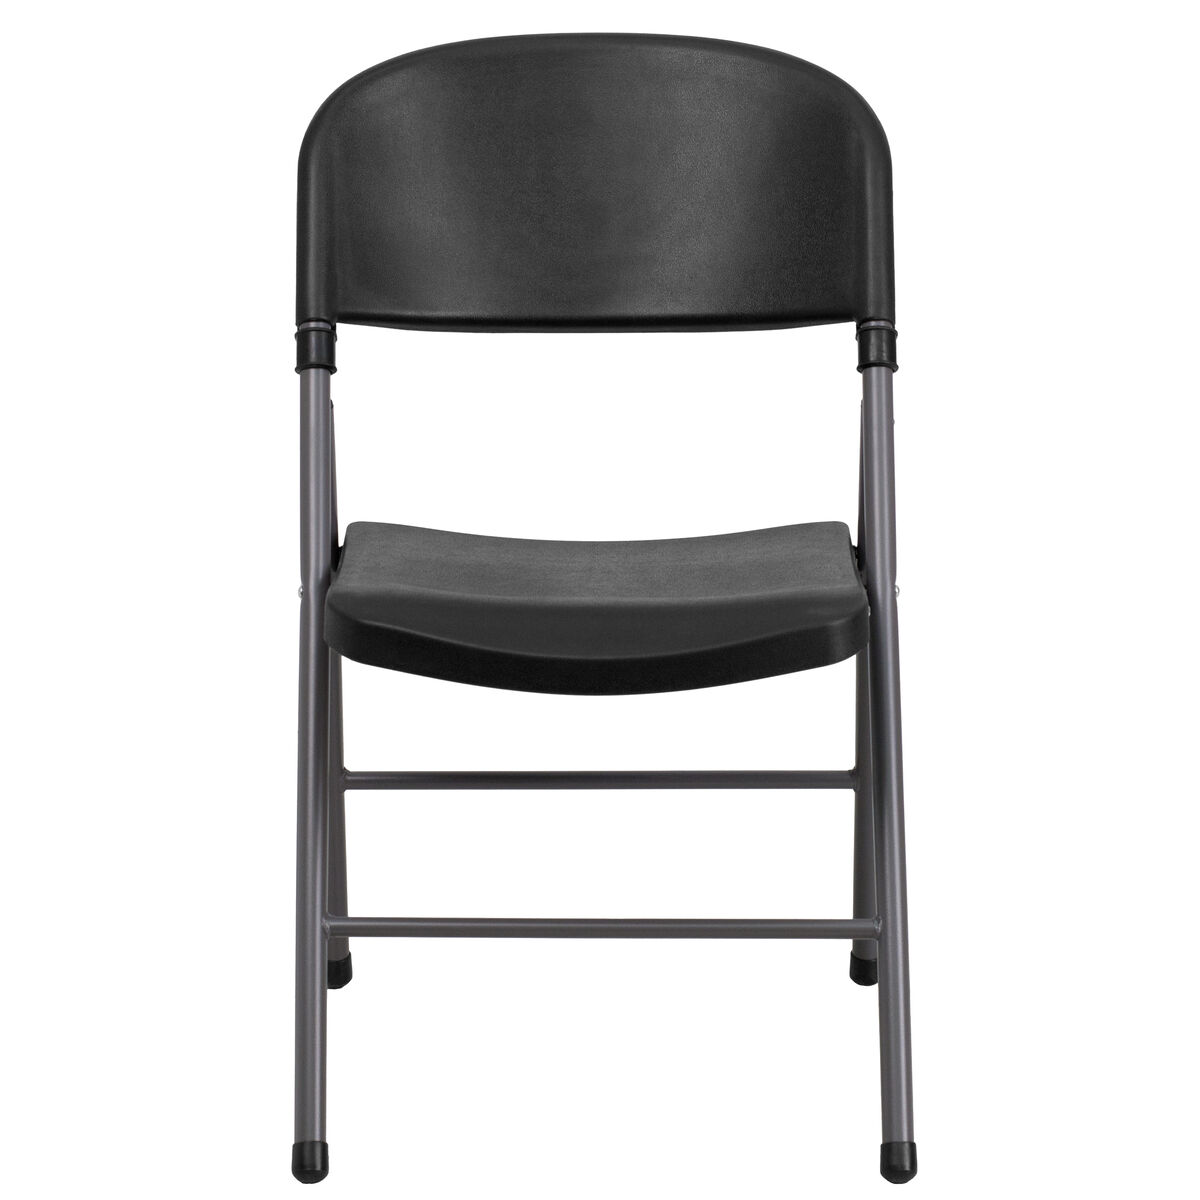 plastic metal chairs. Images Plastic Metal Chairs